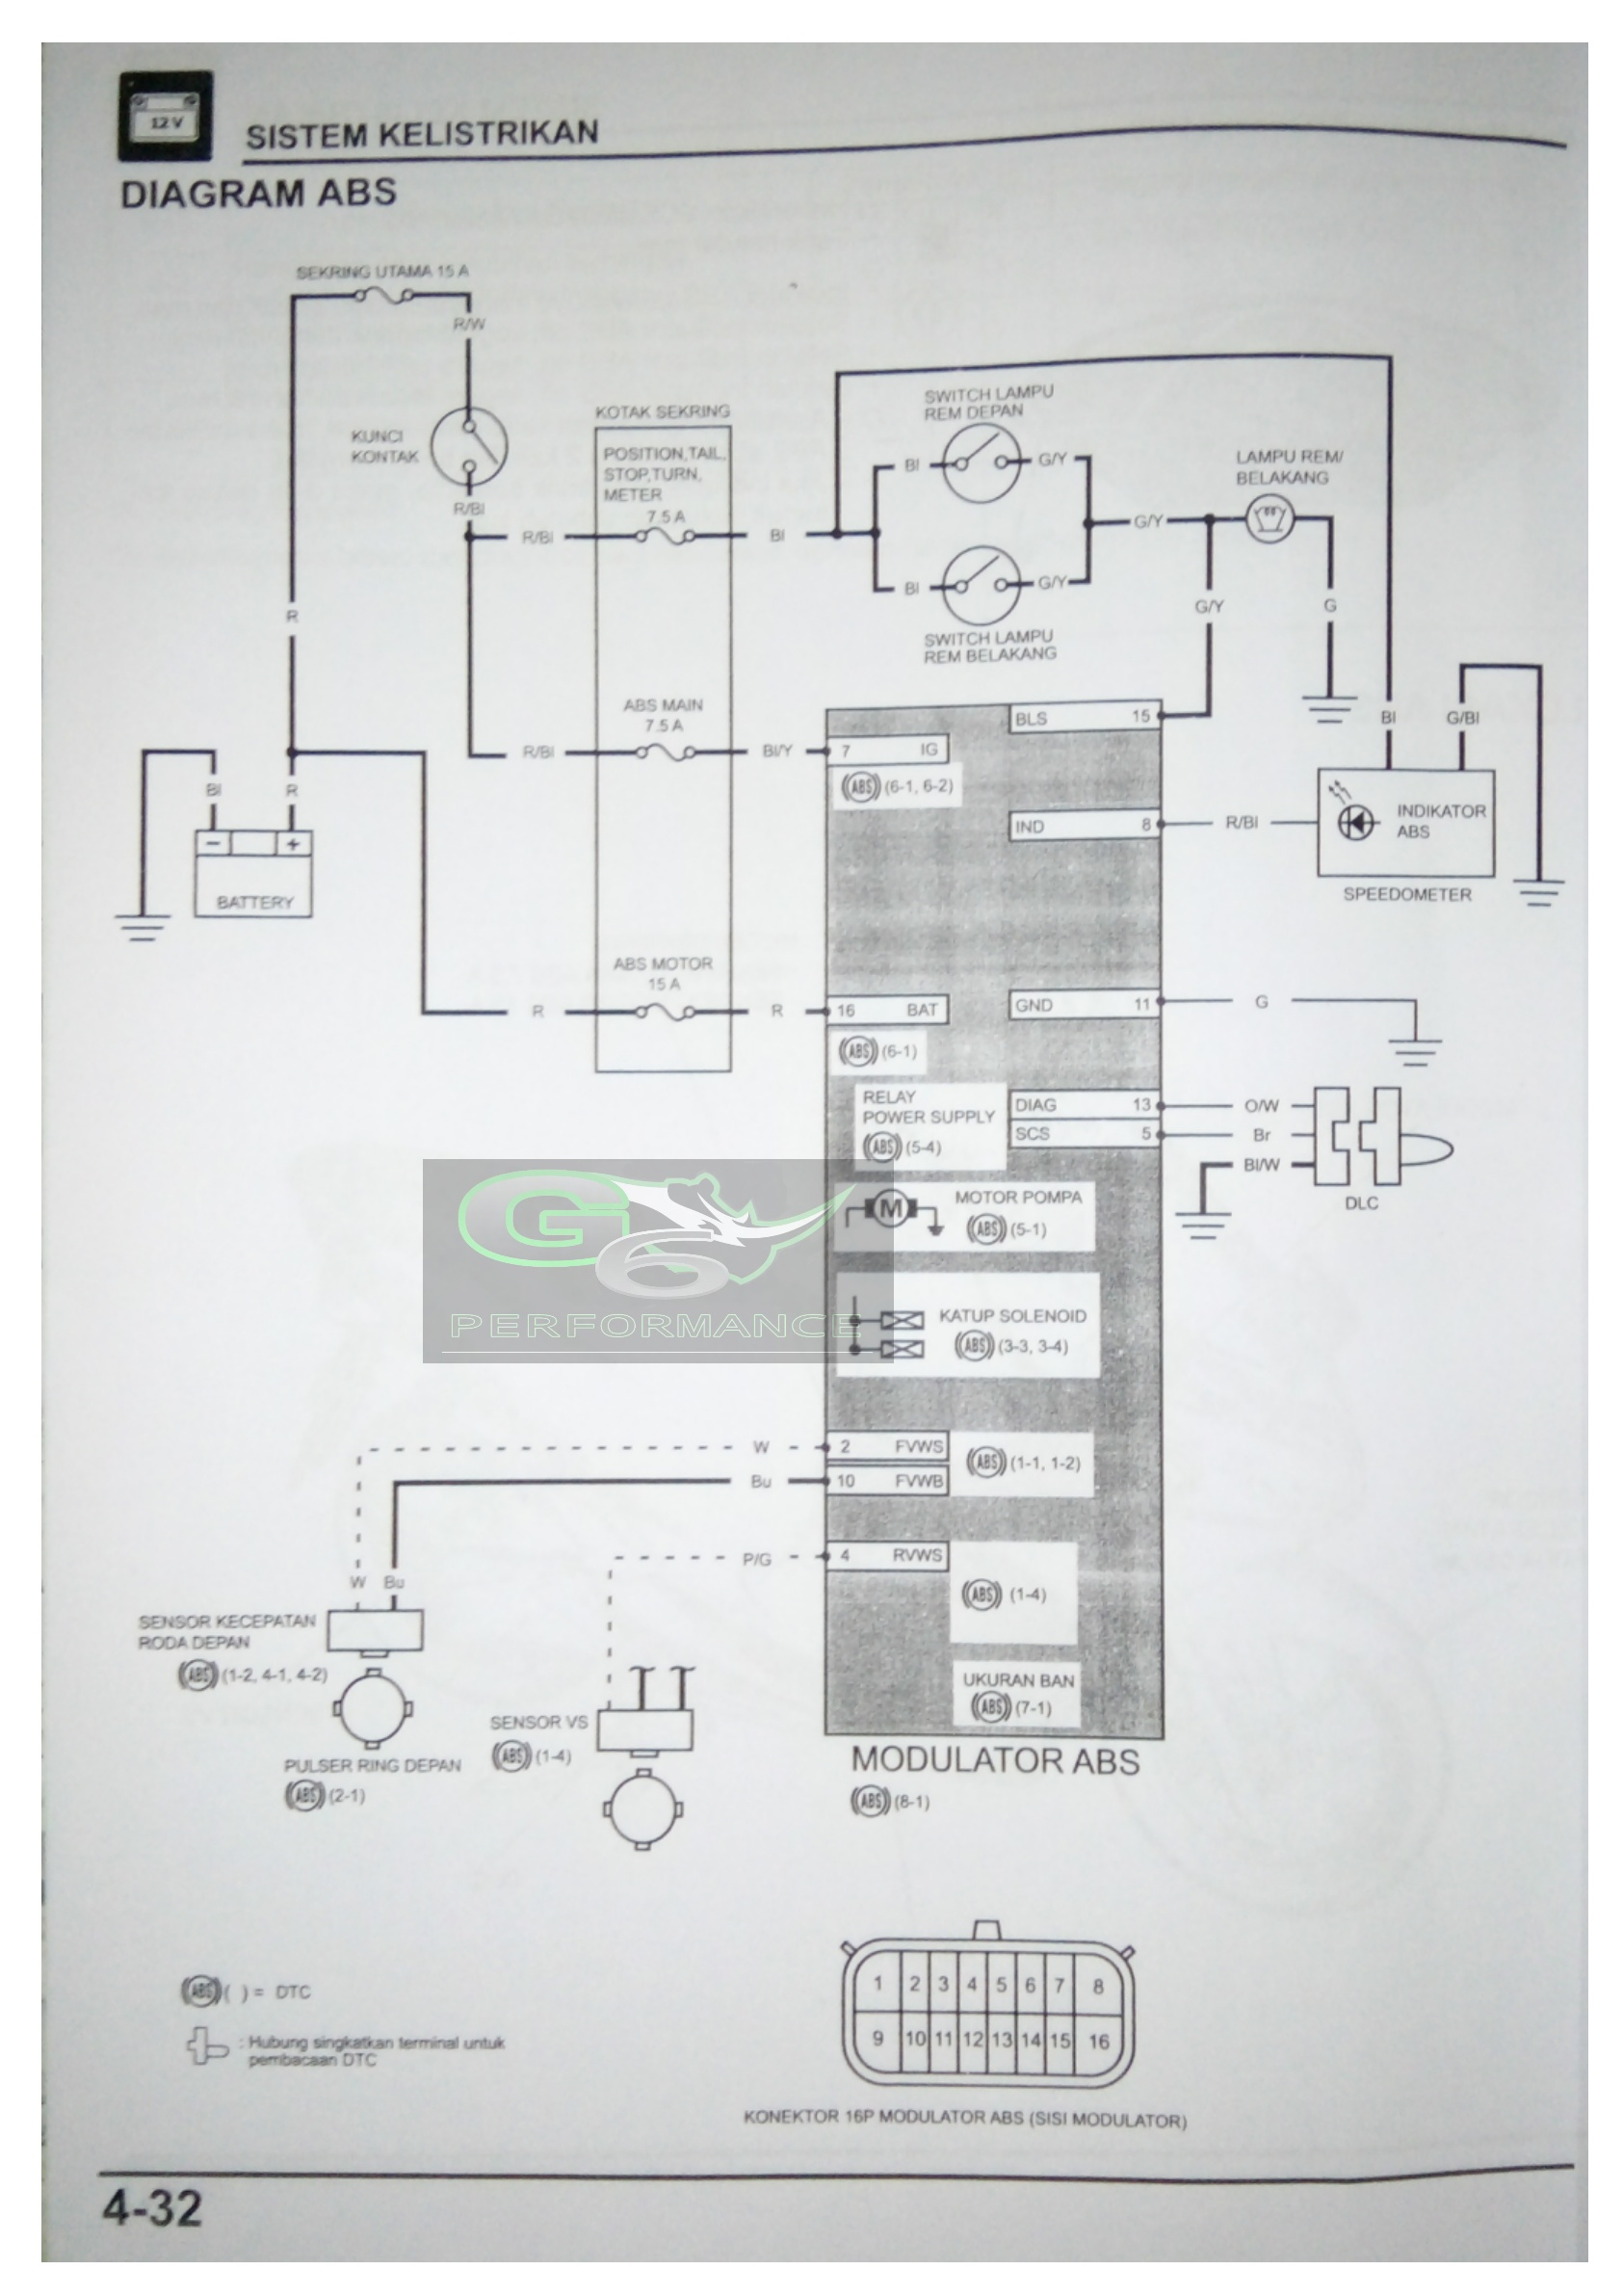 small resolution of electric wiring system diagram honda new pcx 150 2018 gisix s blog wiring diagram honda pcx 150 wiring diagram honda pcx